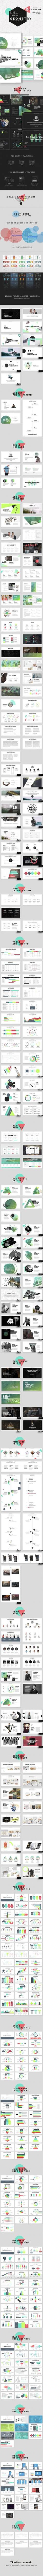 The Most Effective Best PowerPoint Presentation Design Templates with Beautifully Created Slide Layouts, Amazing Graphics. Powerpoint Tips, Business Powerpoint Templates, Creative Powerpoint, Powerpoint Presentation Templates, Keynote Template, Powerpoint Presentations, Corporate Presentation, Presentation Layout, Brochure Inspiration